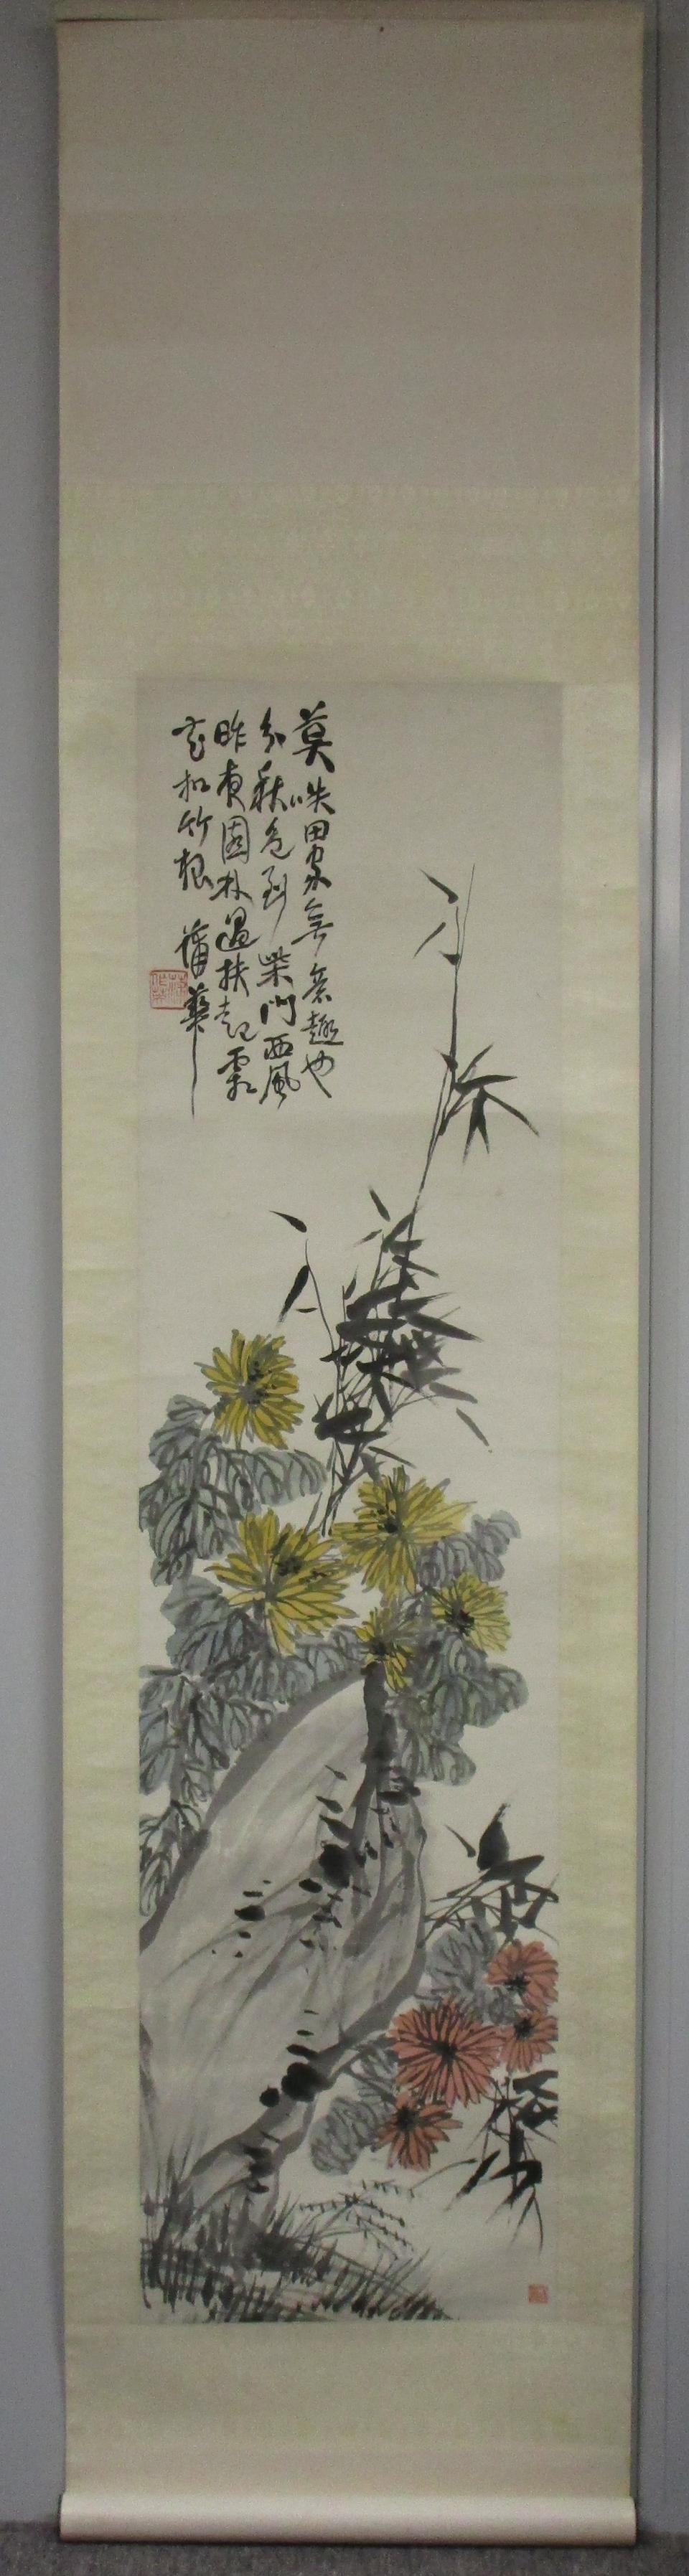 Pu Hua (1832-1911) Chrysanthemum, Bamboo and Rock